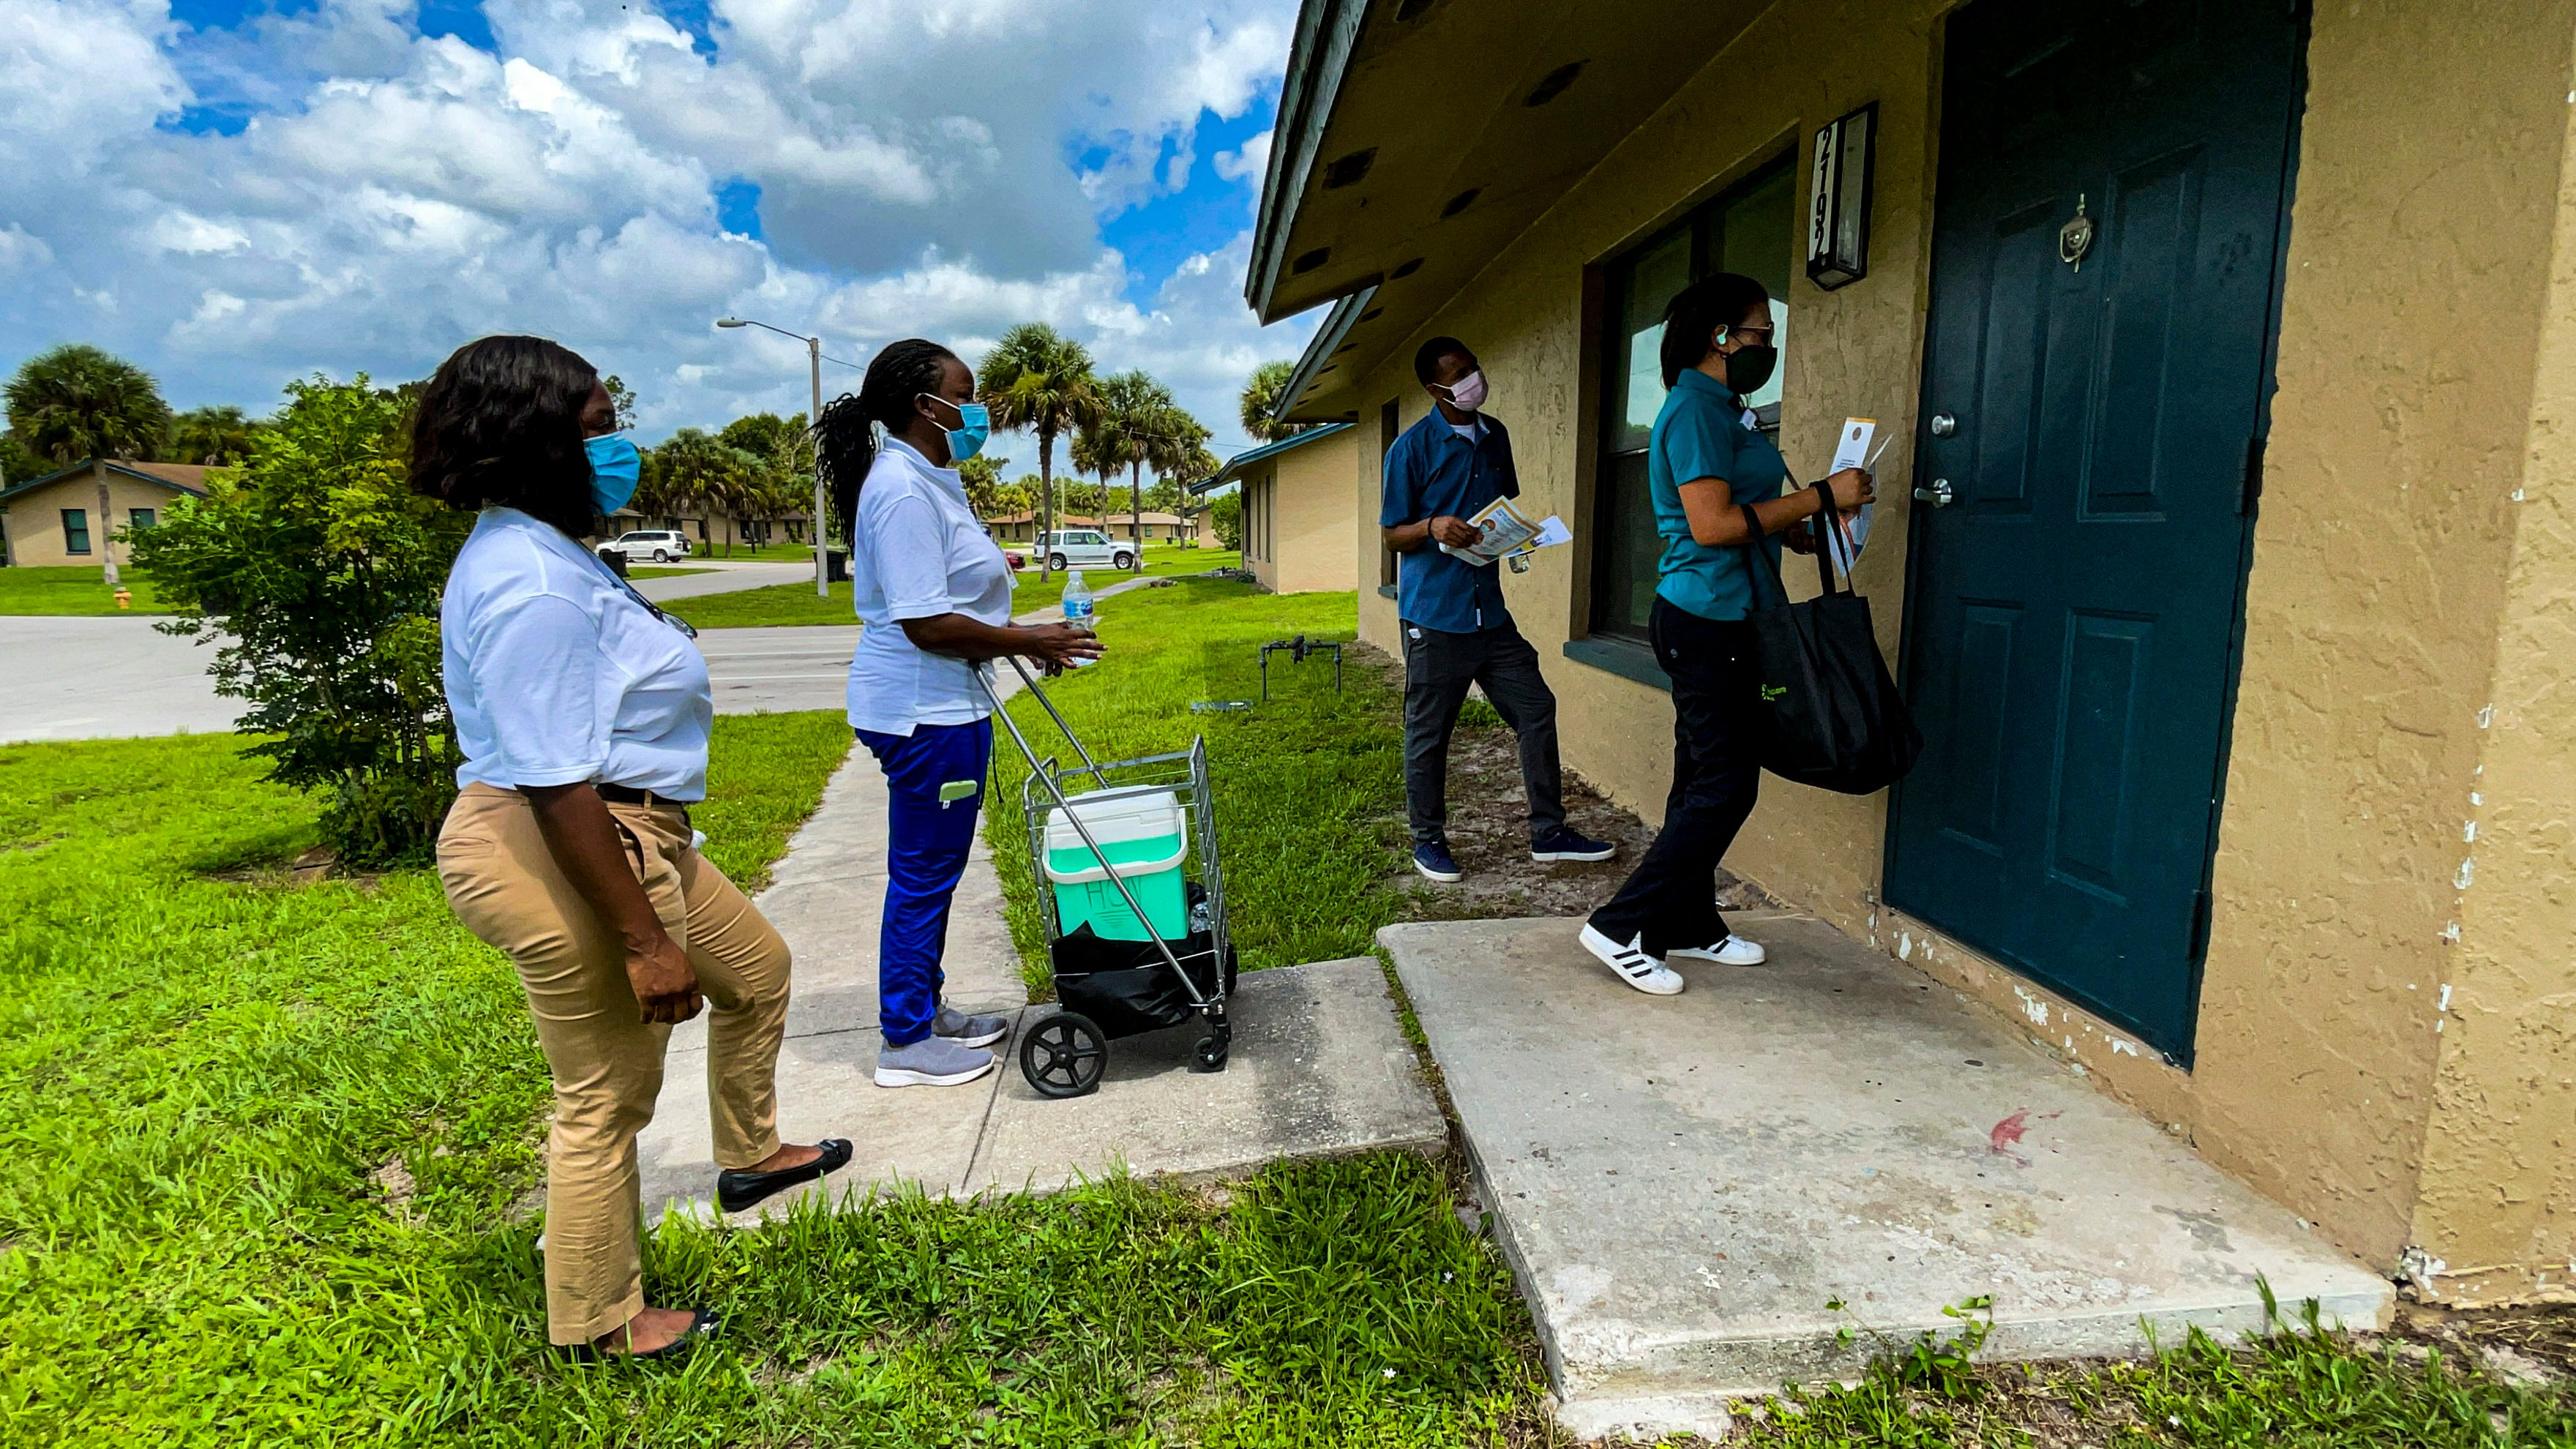 Healthcare Network COVID-19 response team members Junia Monpremier, Odilest Guerrier and Marisol Howell go door-to-door in July in Immokalee, Florida, offering information on vaccines and testing in a community known for its farmworker population.